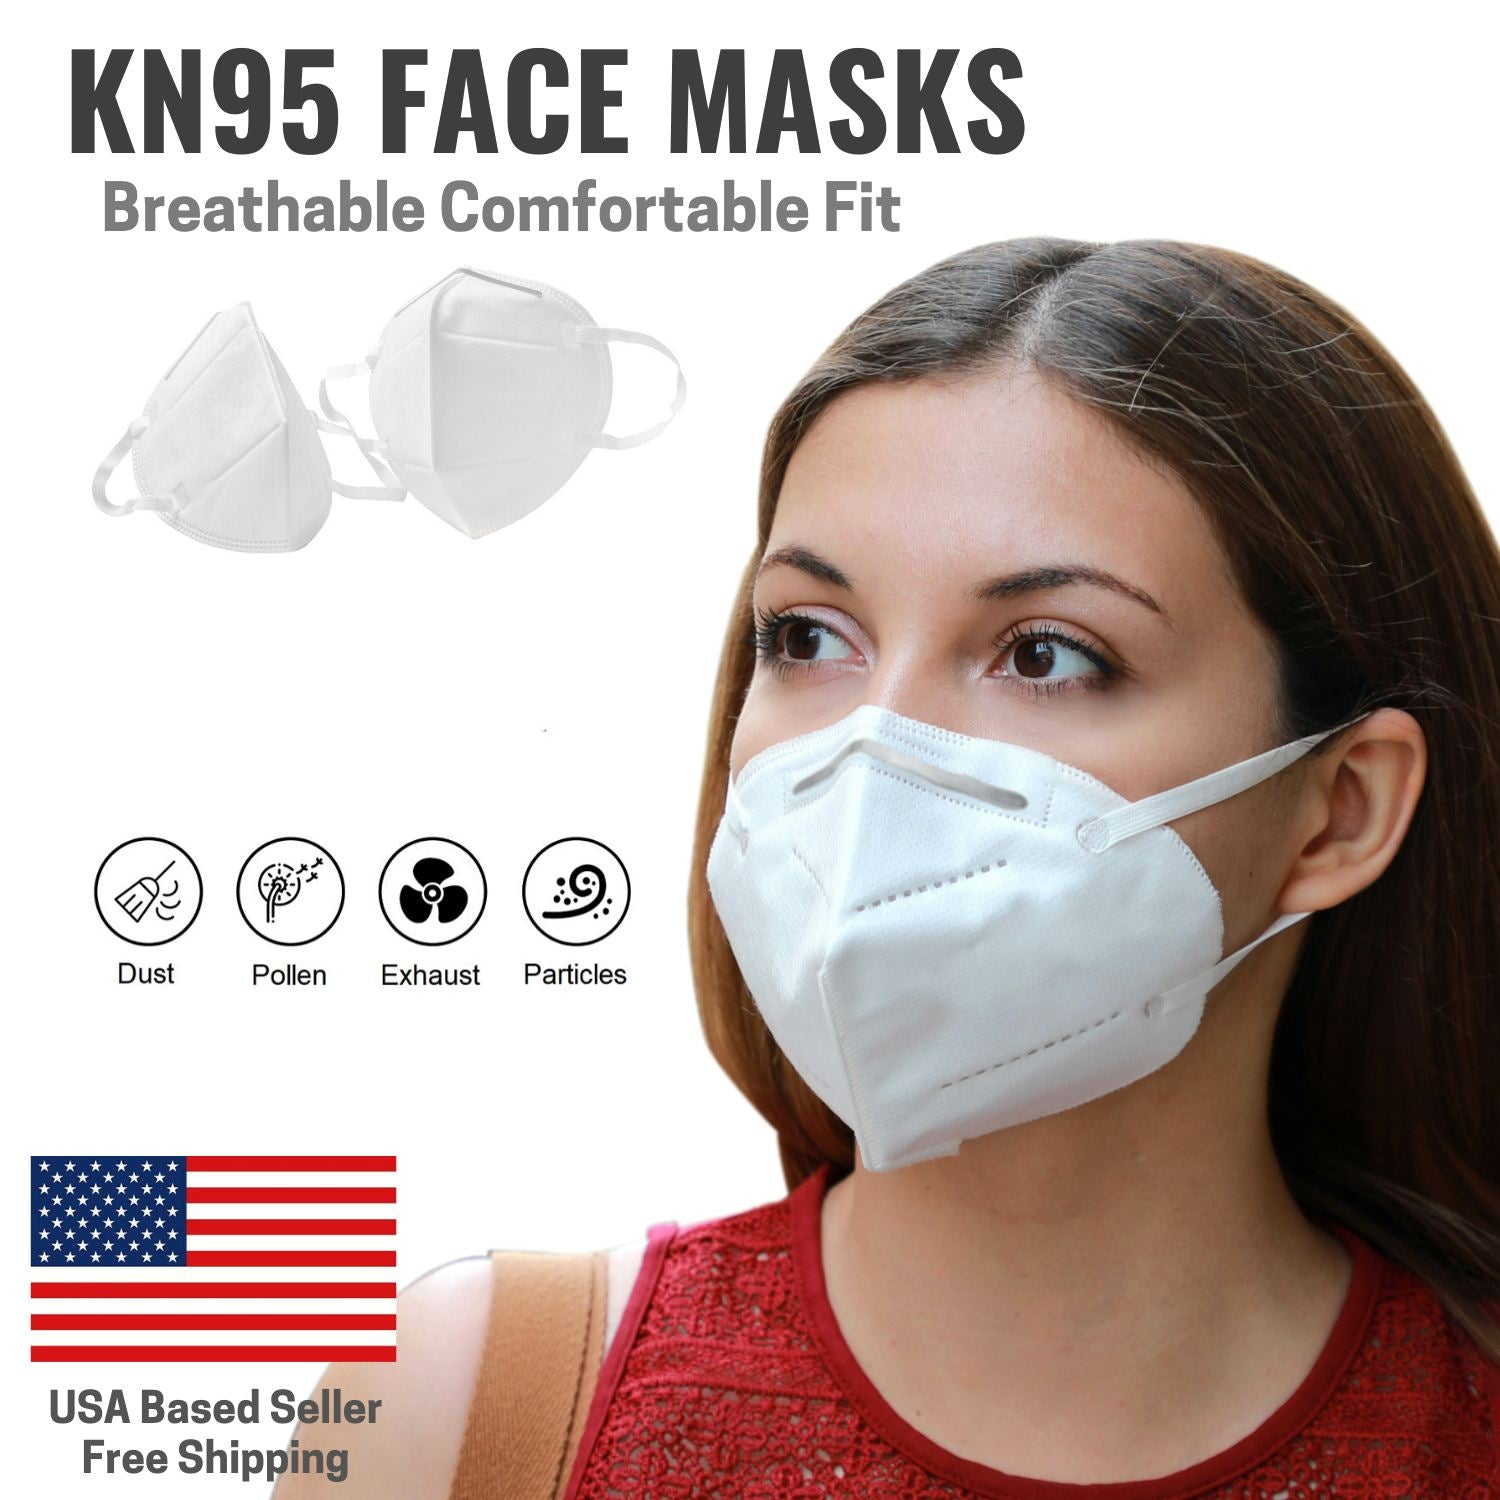 Facial Protection Filtration, Anti-fog, Dust-proof Adjustable safety Full Face Masks [10 Pack]